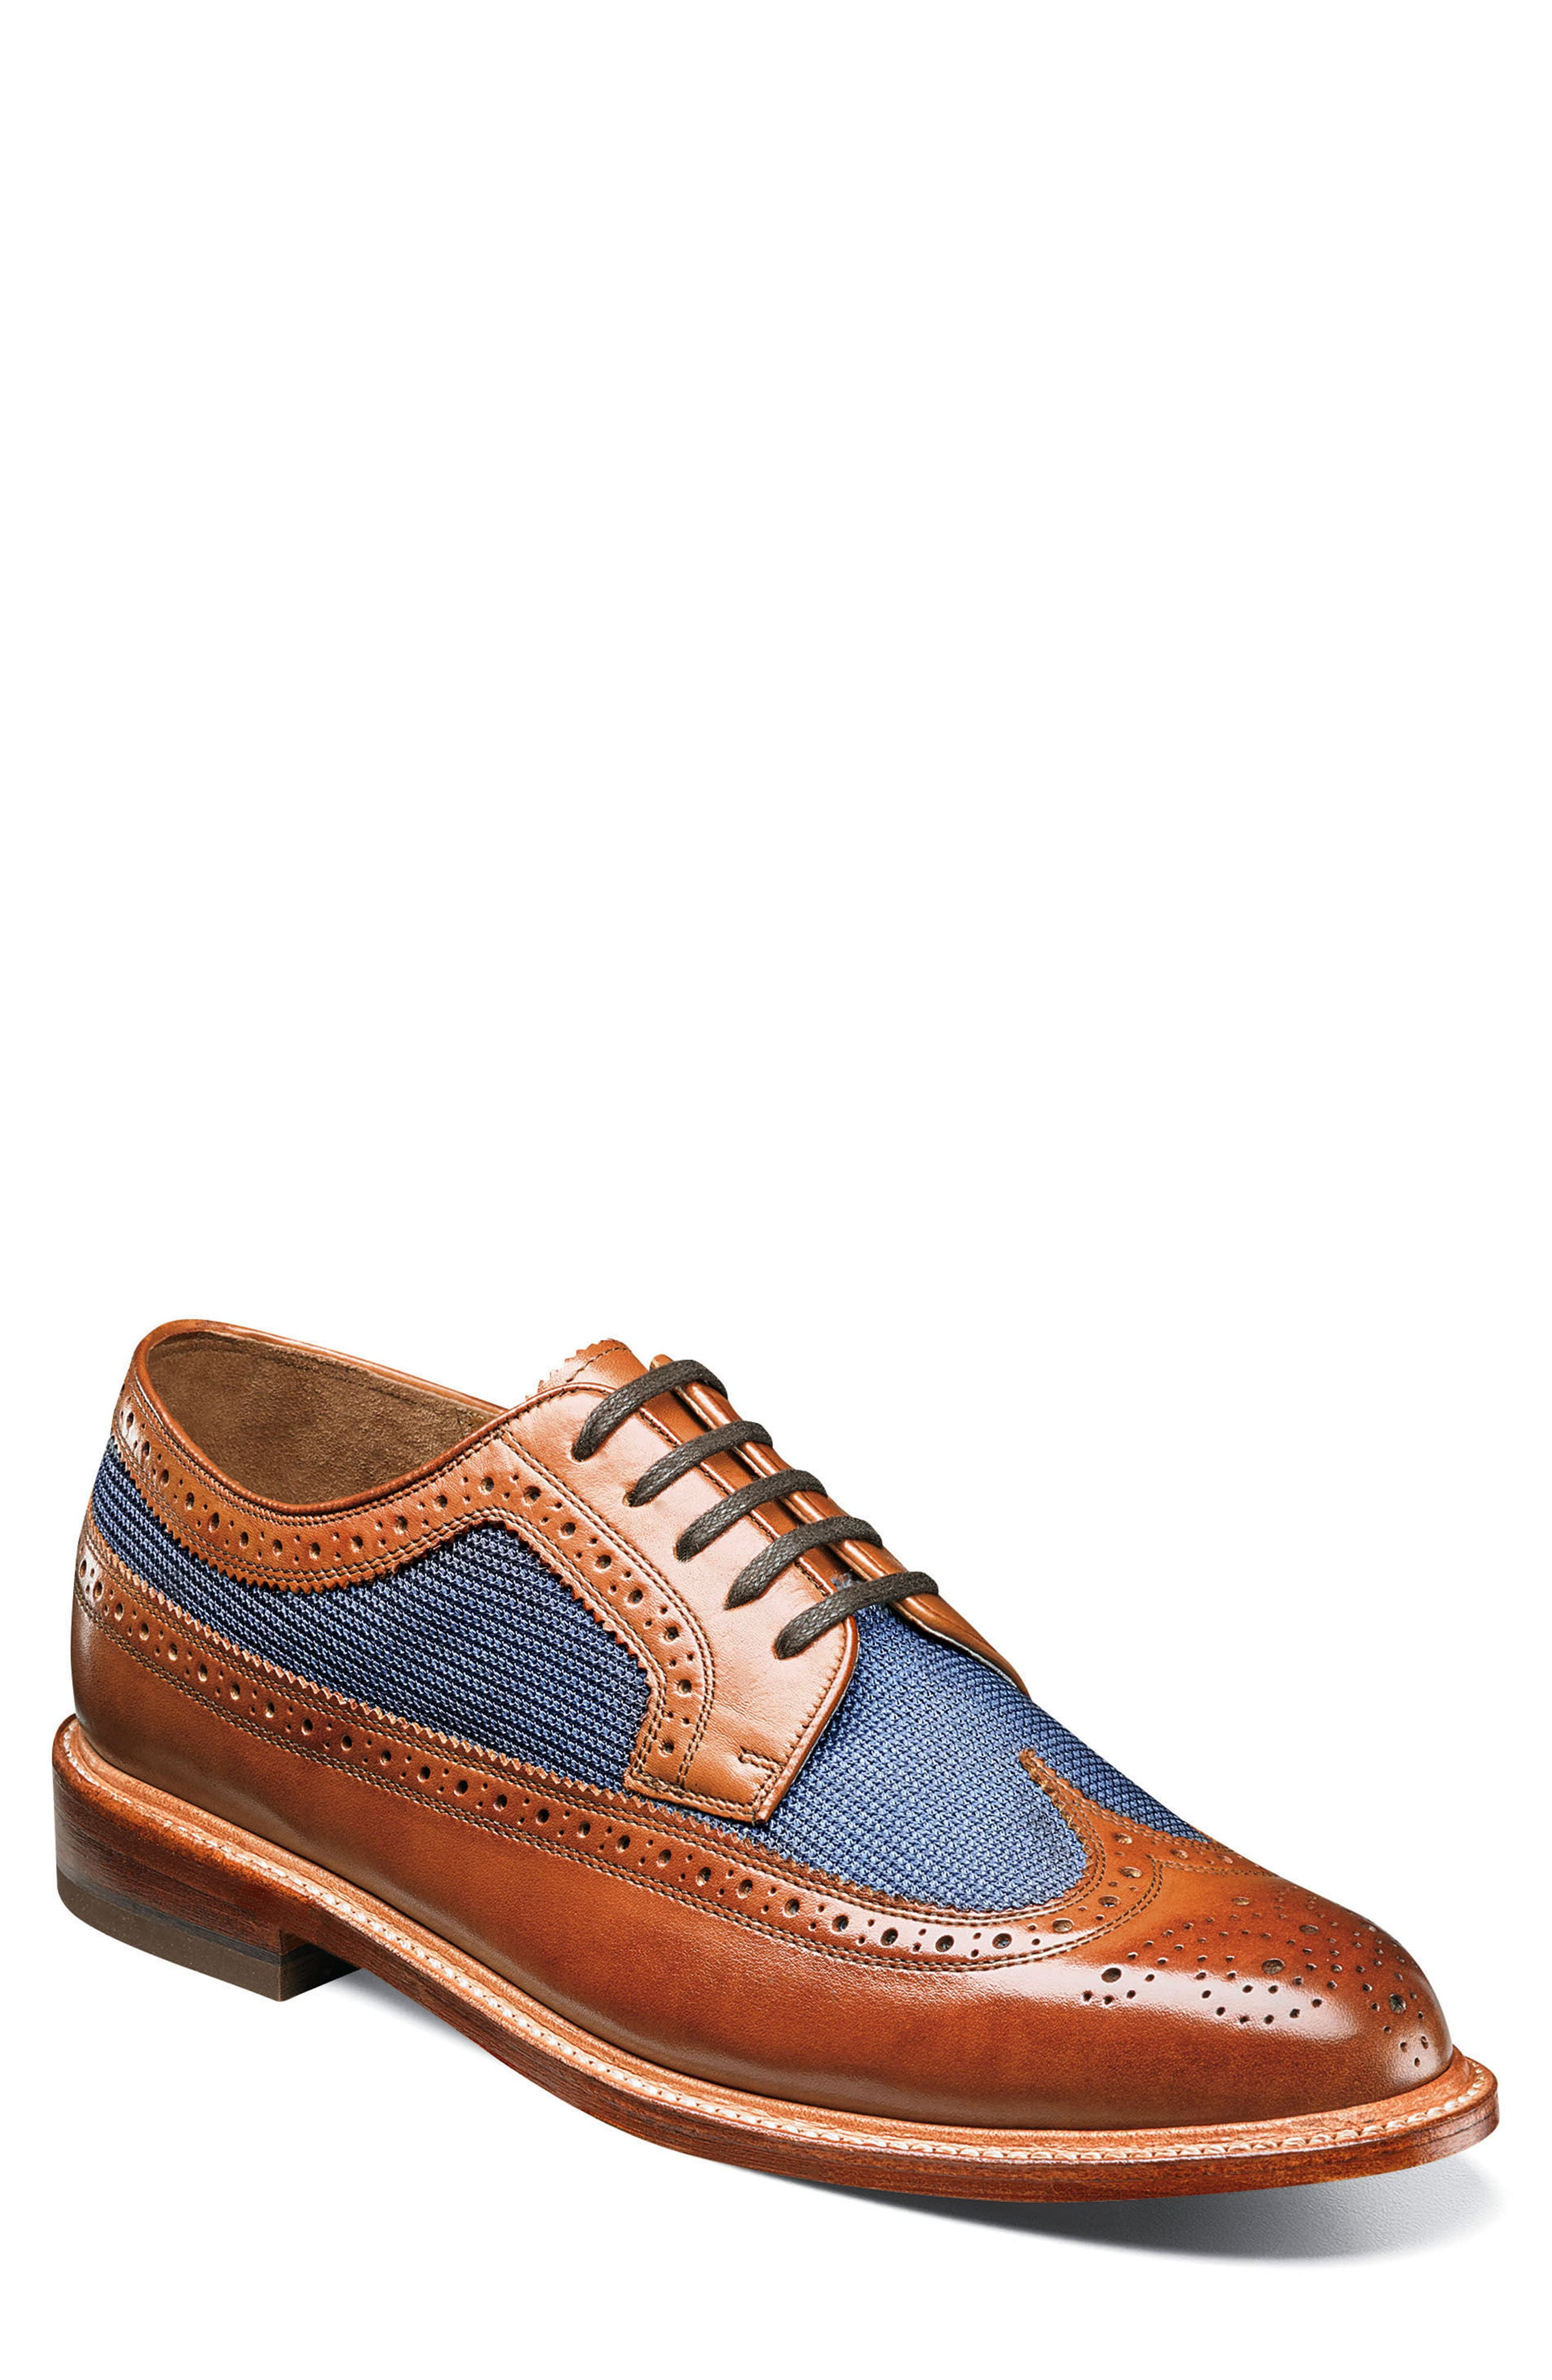 'Heritage' Wingtip,                         Main,                         color, Cognac Leather/ Mesh